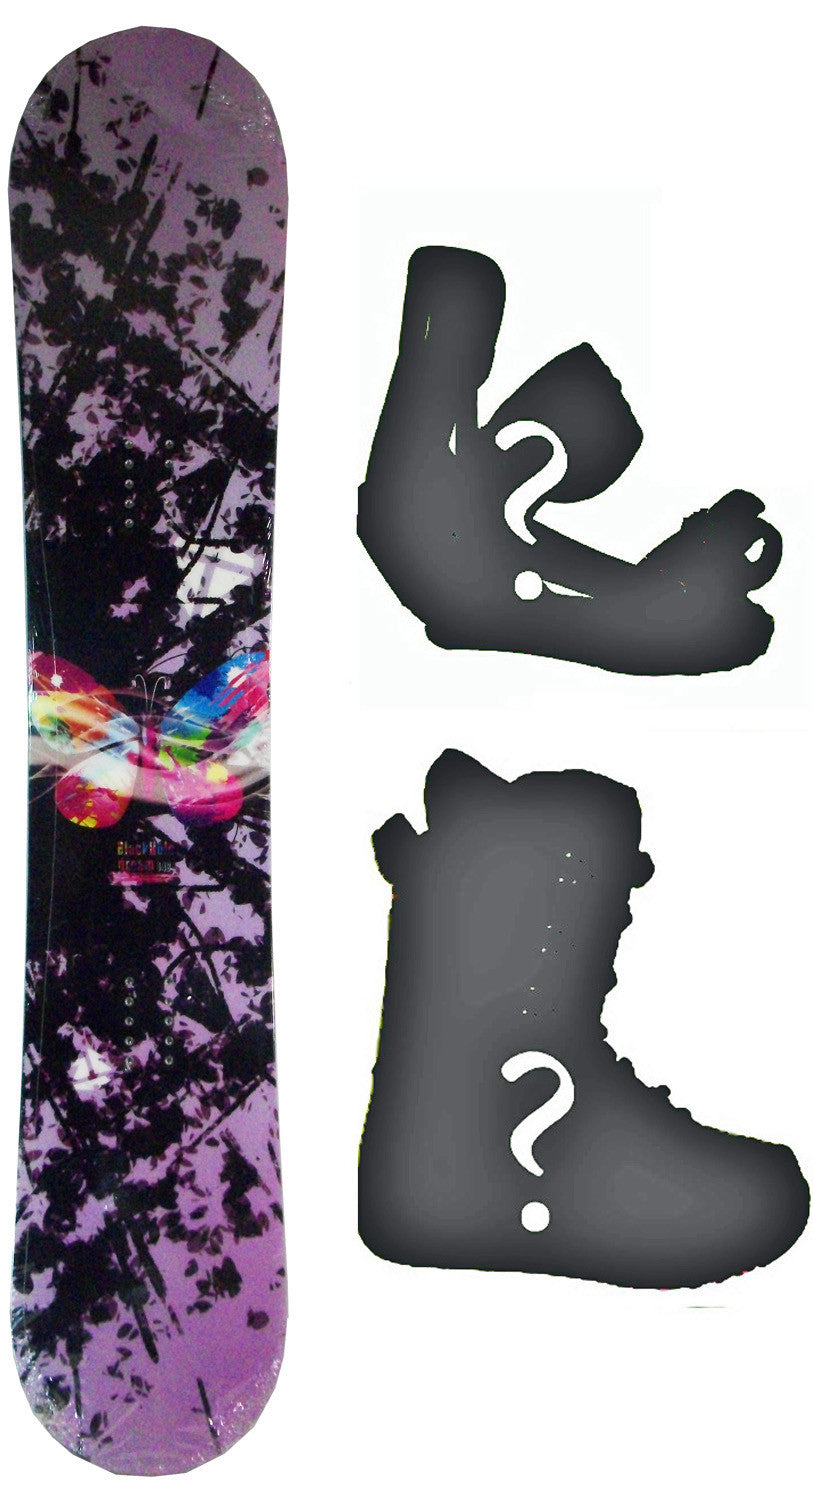 148cm  Black Hole Dream Butterfly Rocker Snowboard, Build a Package with Boots and Bindings